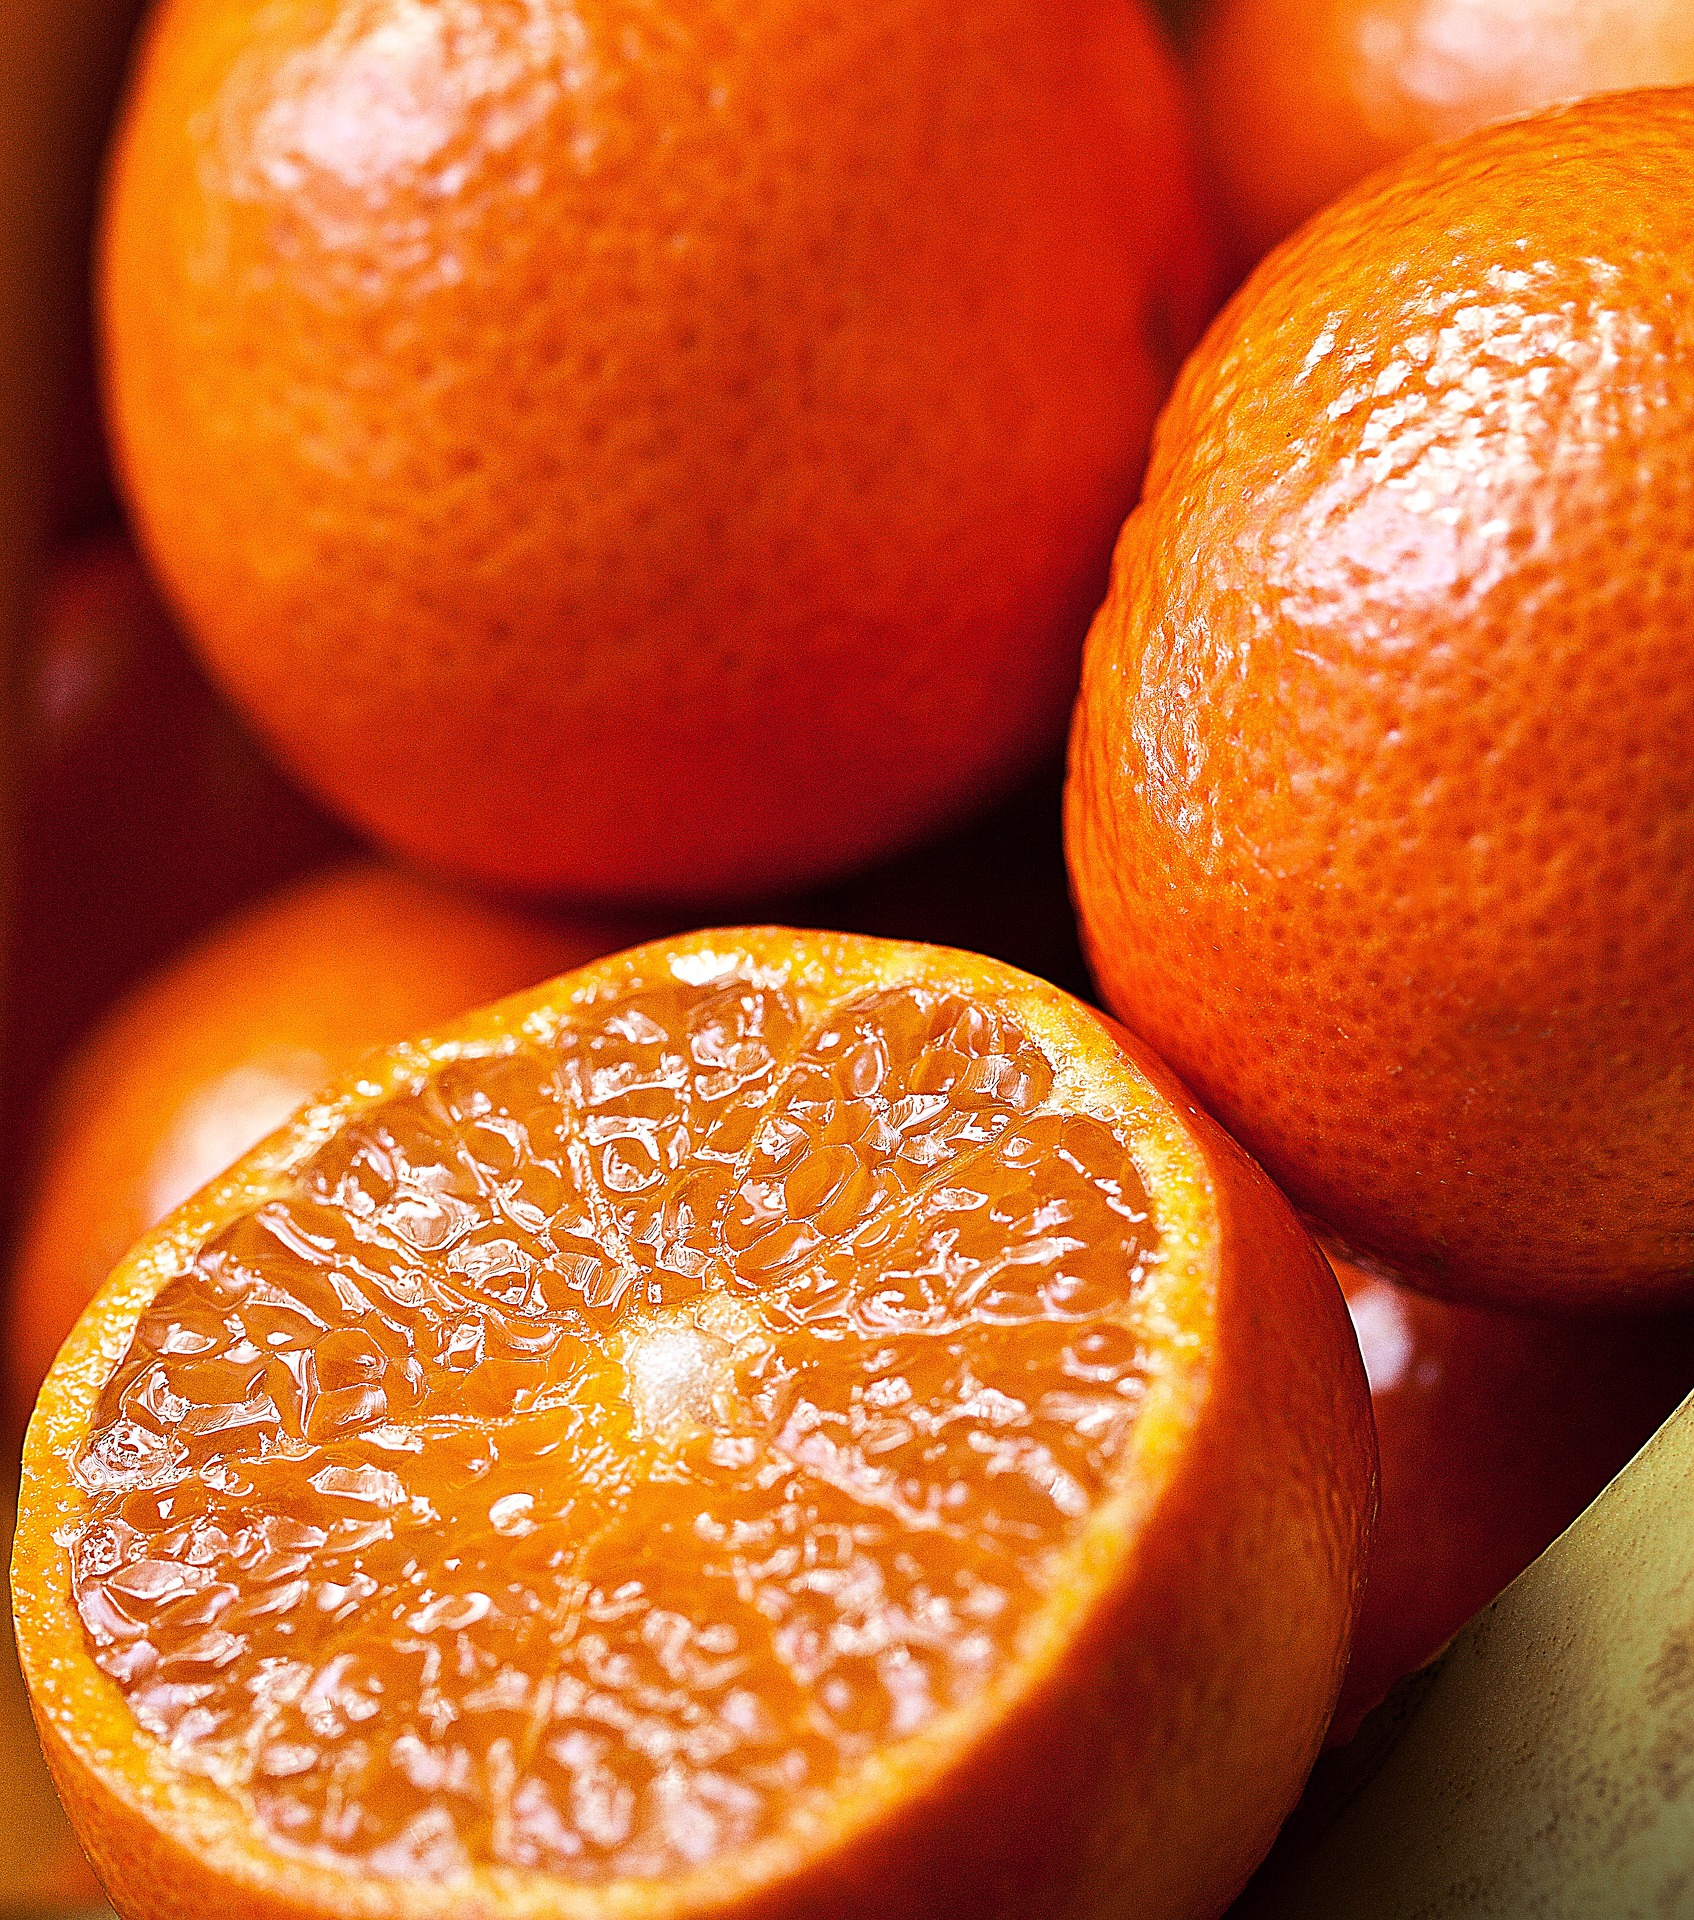 The Importance of Vitamin C for Our Bodies